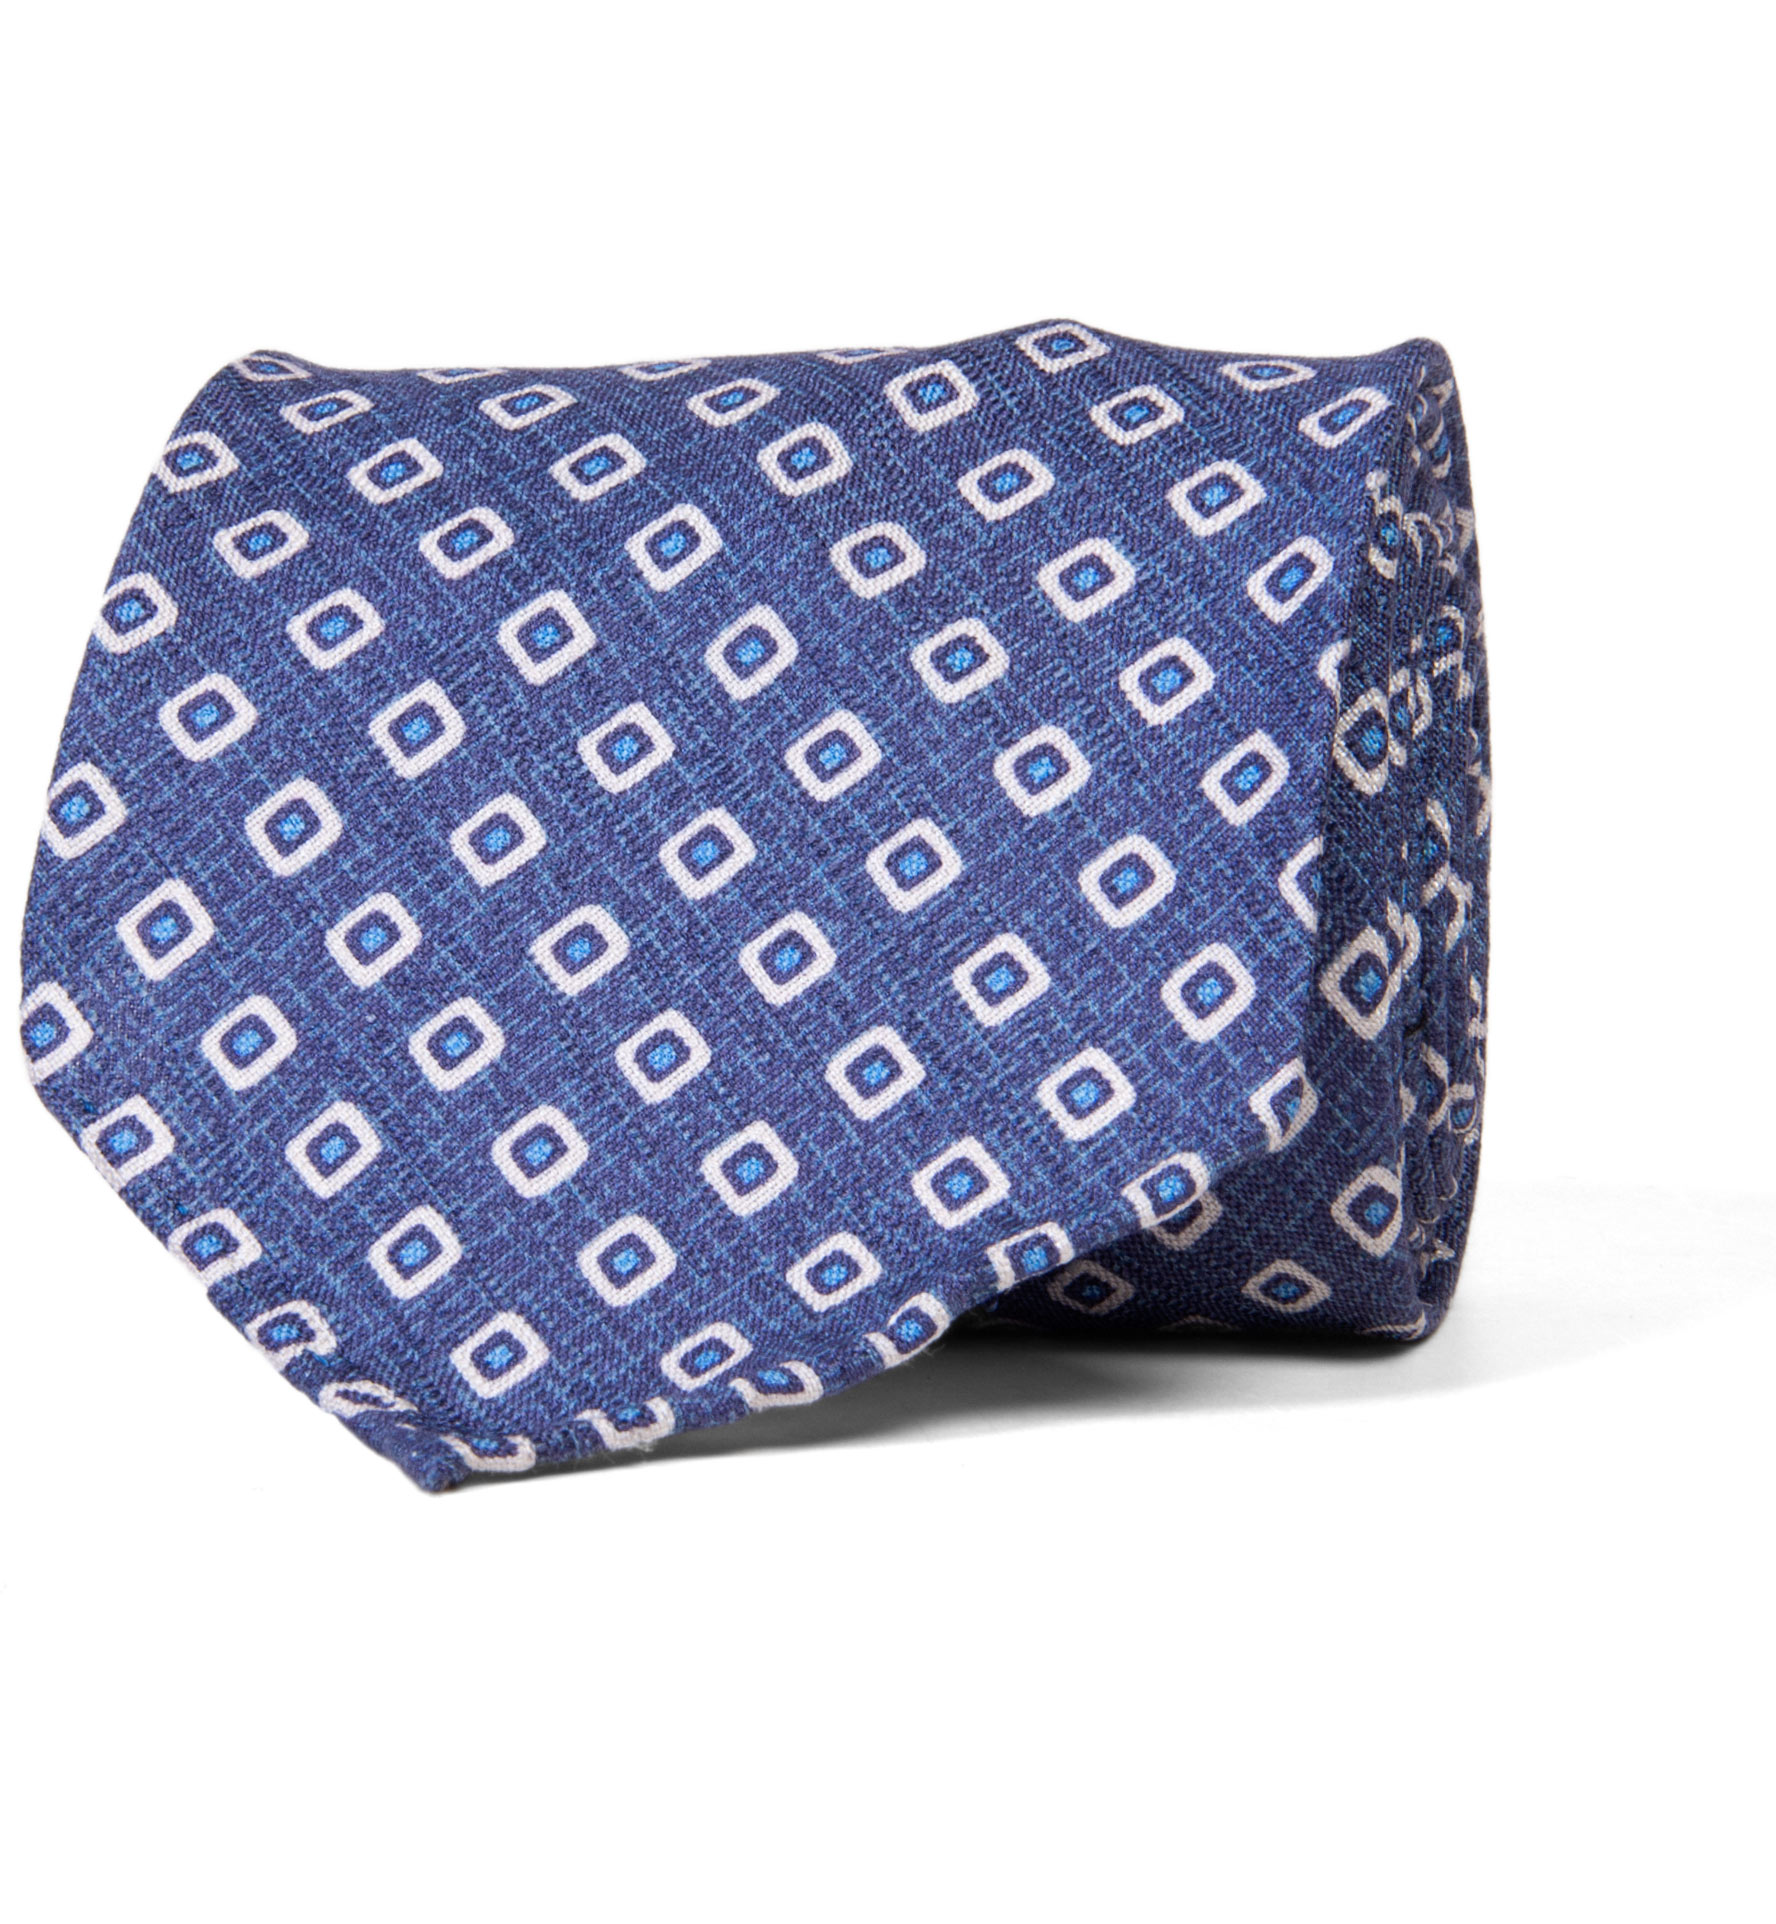 Zoom Image of Olmo Blue and White Block Print Tie